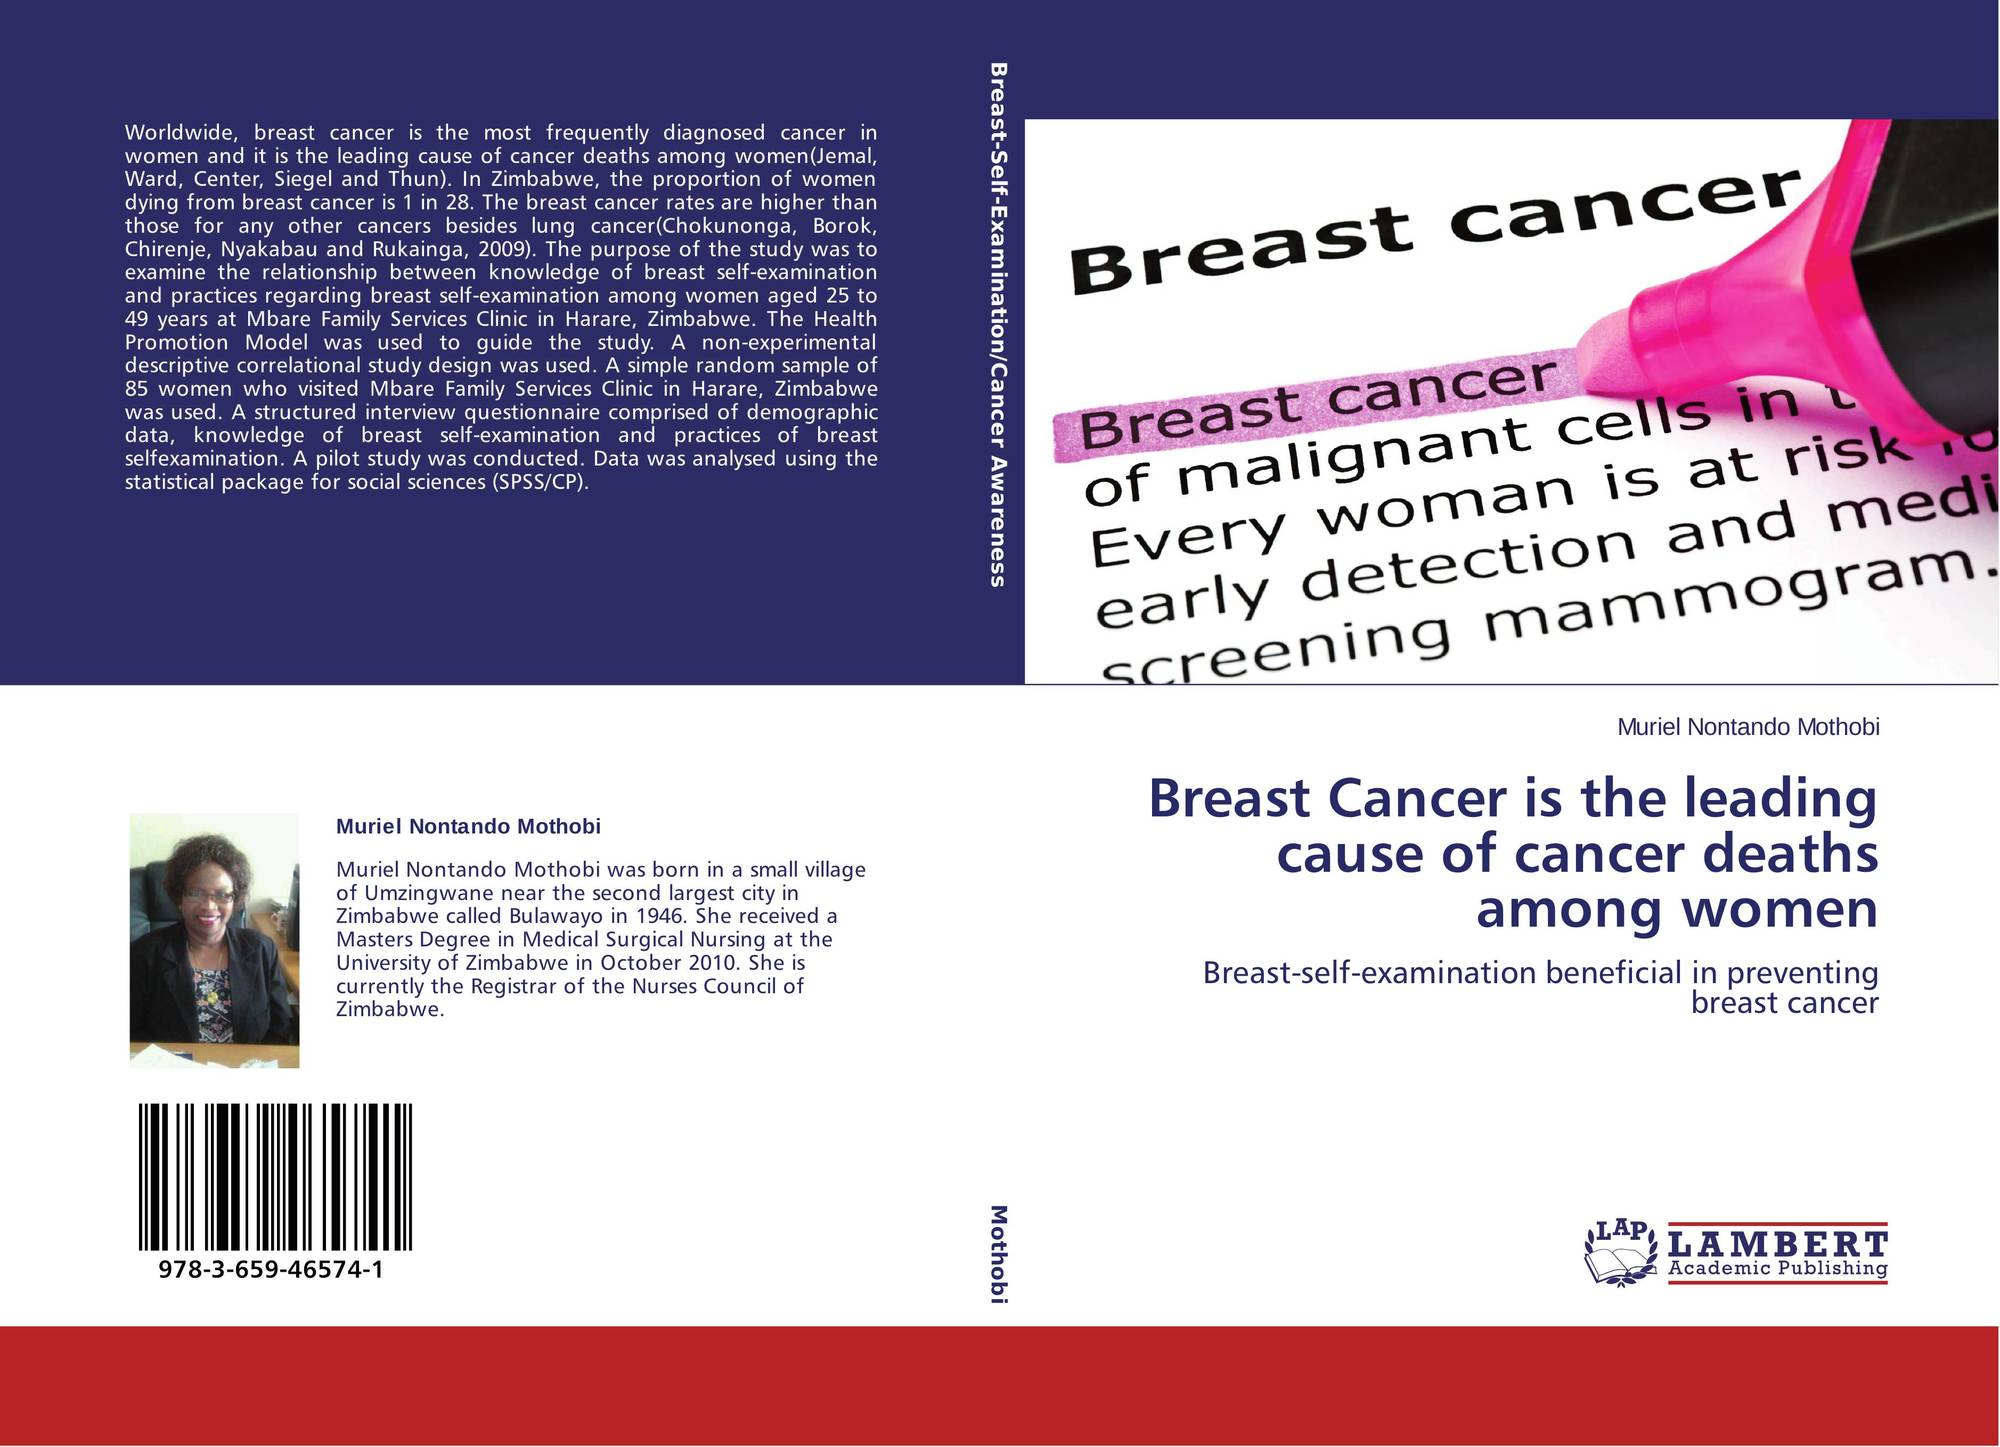 an analysis of breast cancer as cause of death in most women today Breast cancer will affect 1 in 8 women during their lifetime — and it is the fourth-leading cause of cancer death in breast cancer – everything you need to.